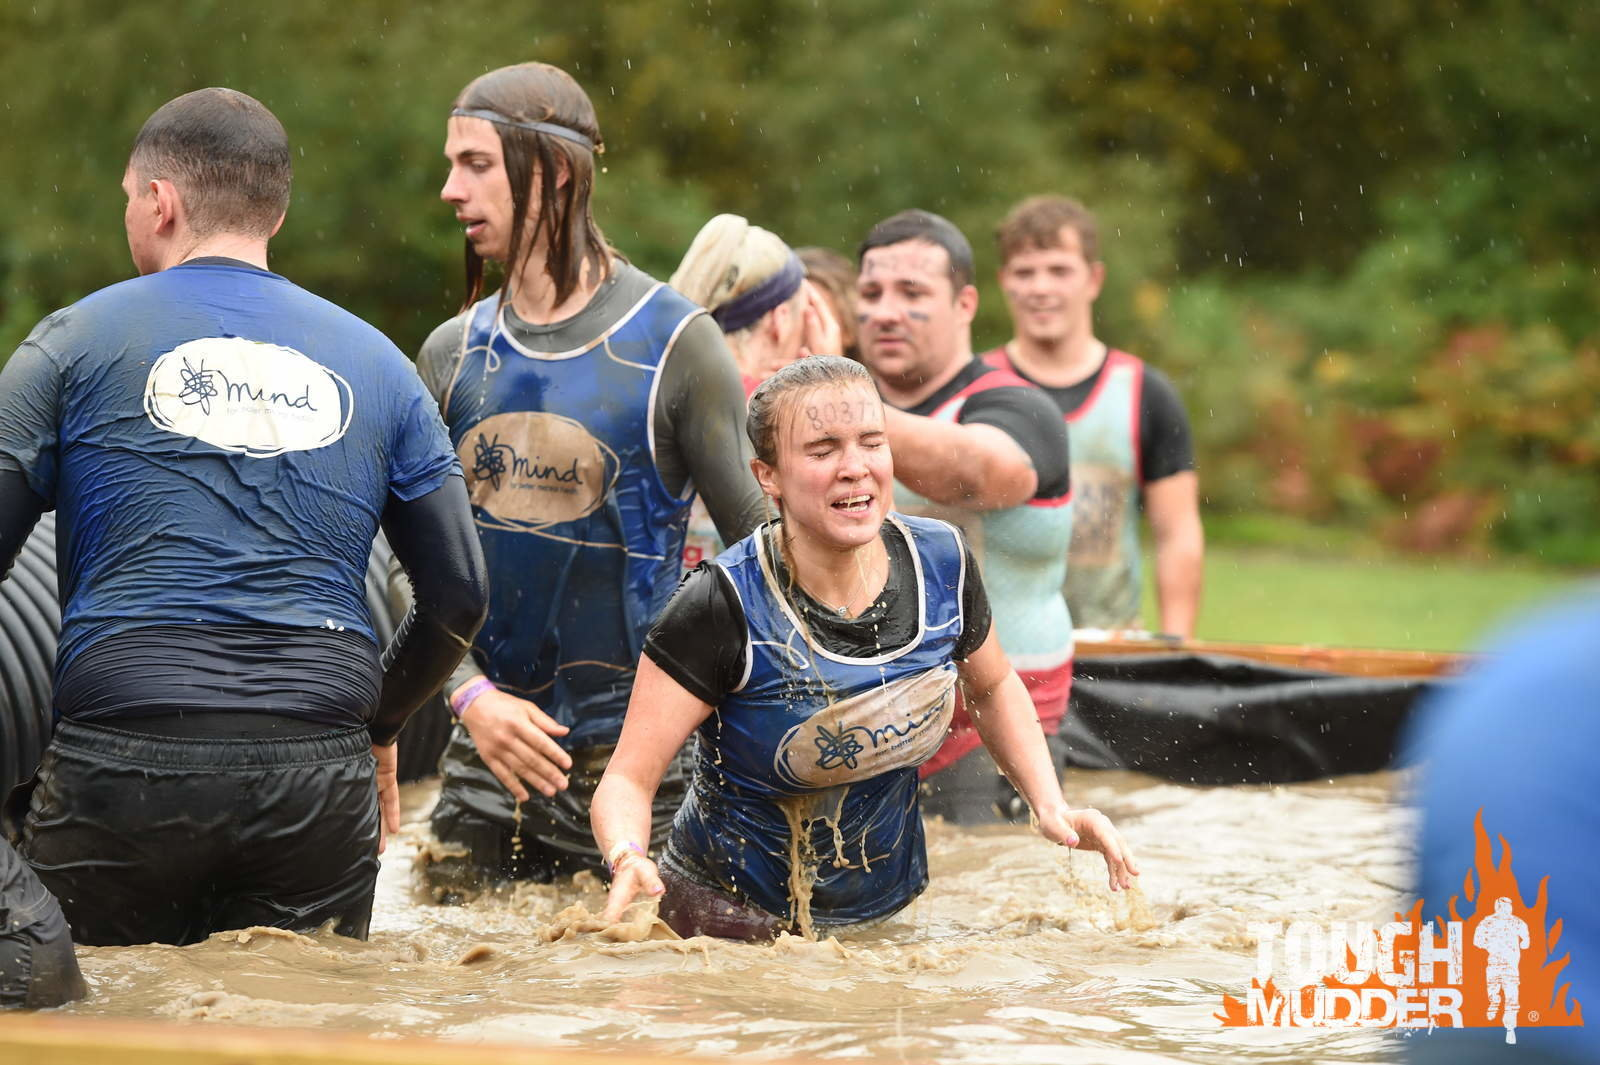 a Mind Team mid race in muddy water